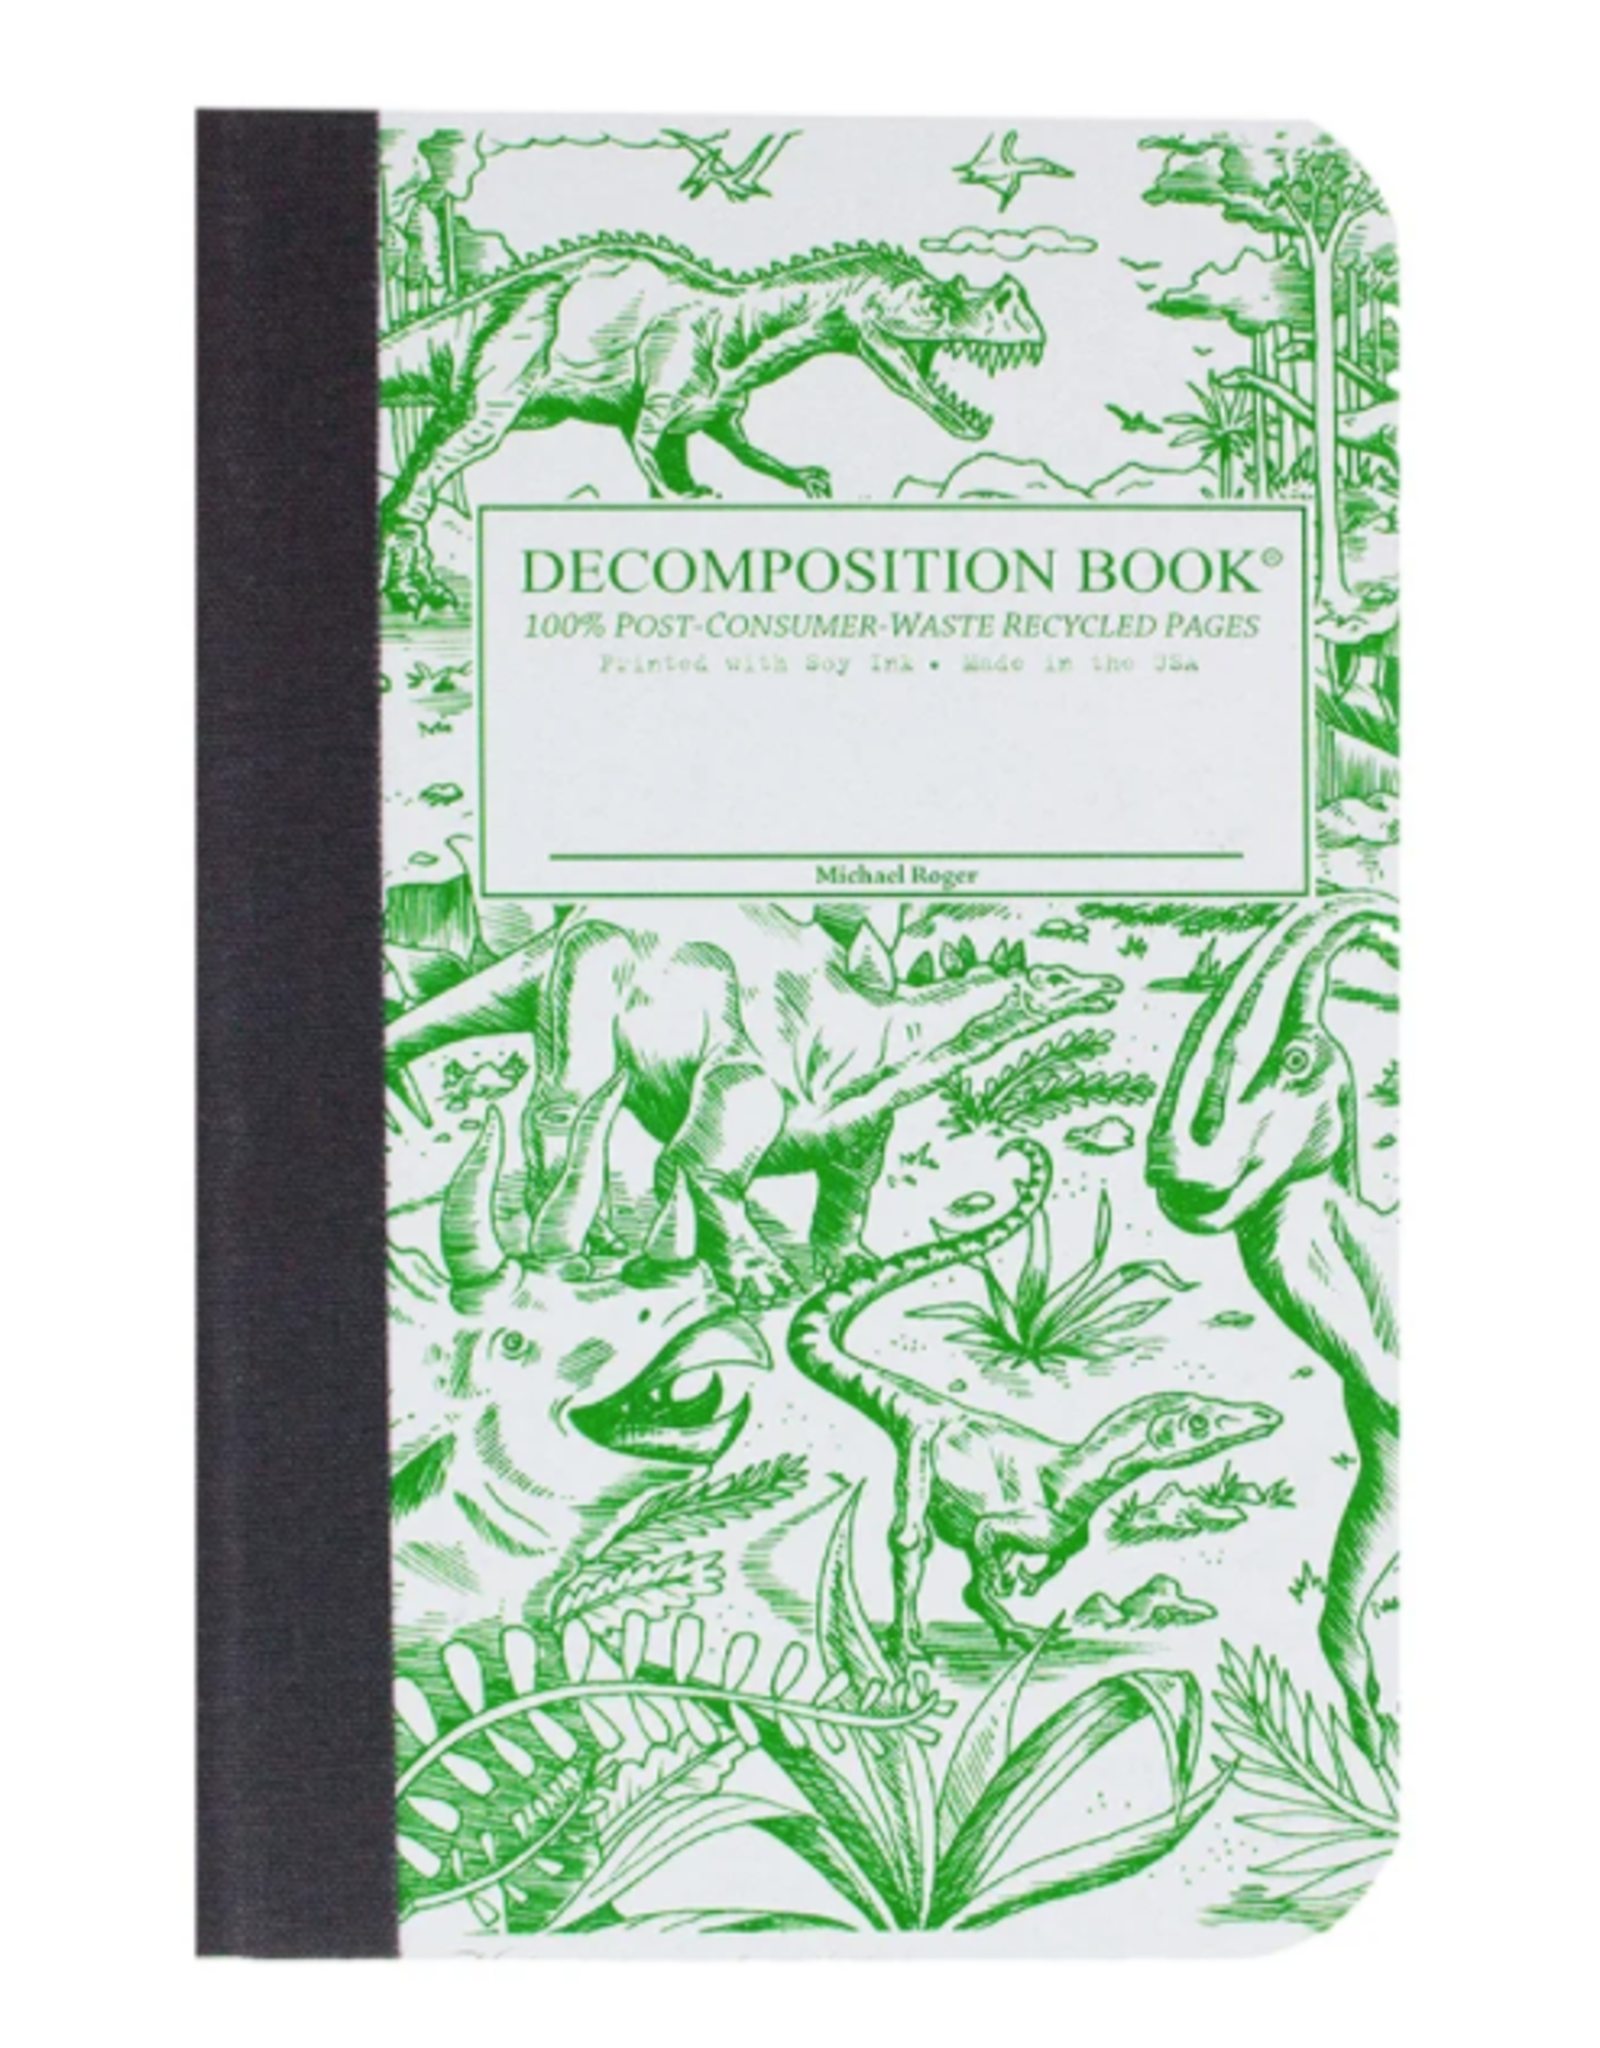 Michael Roger Press Decomposition Book 4x6""